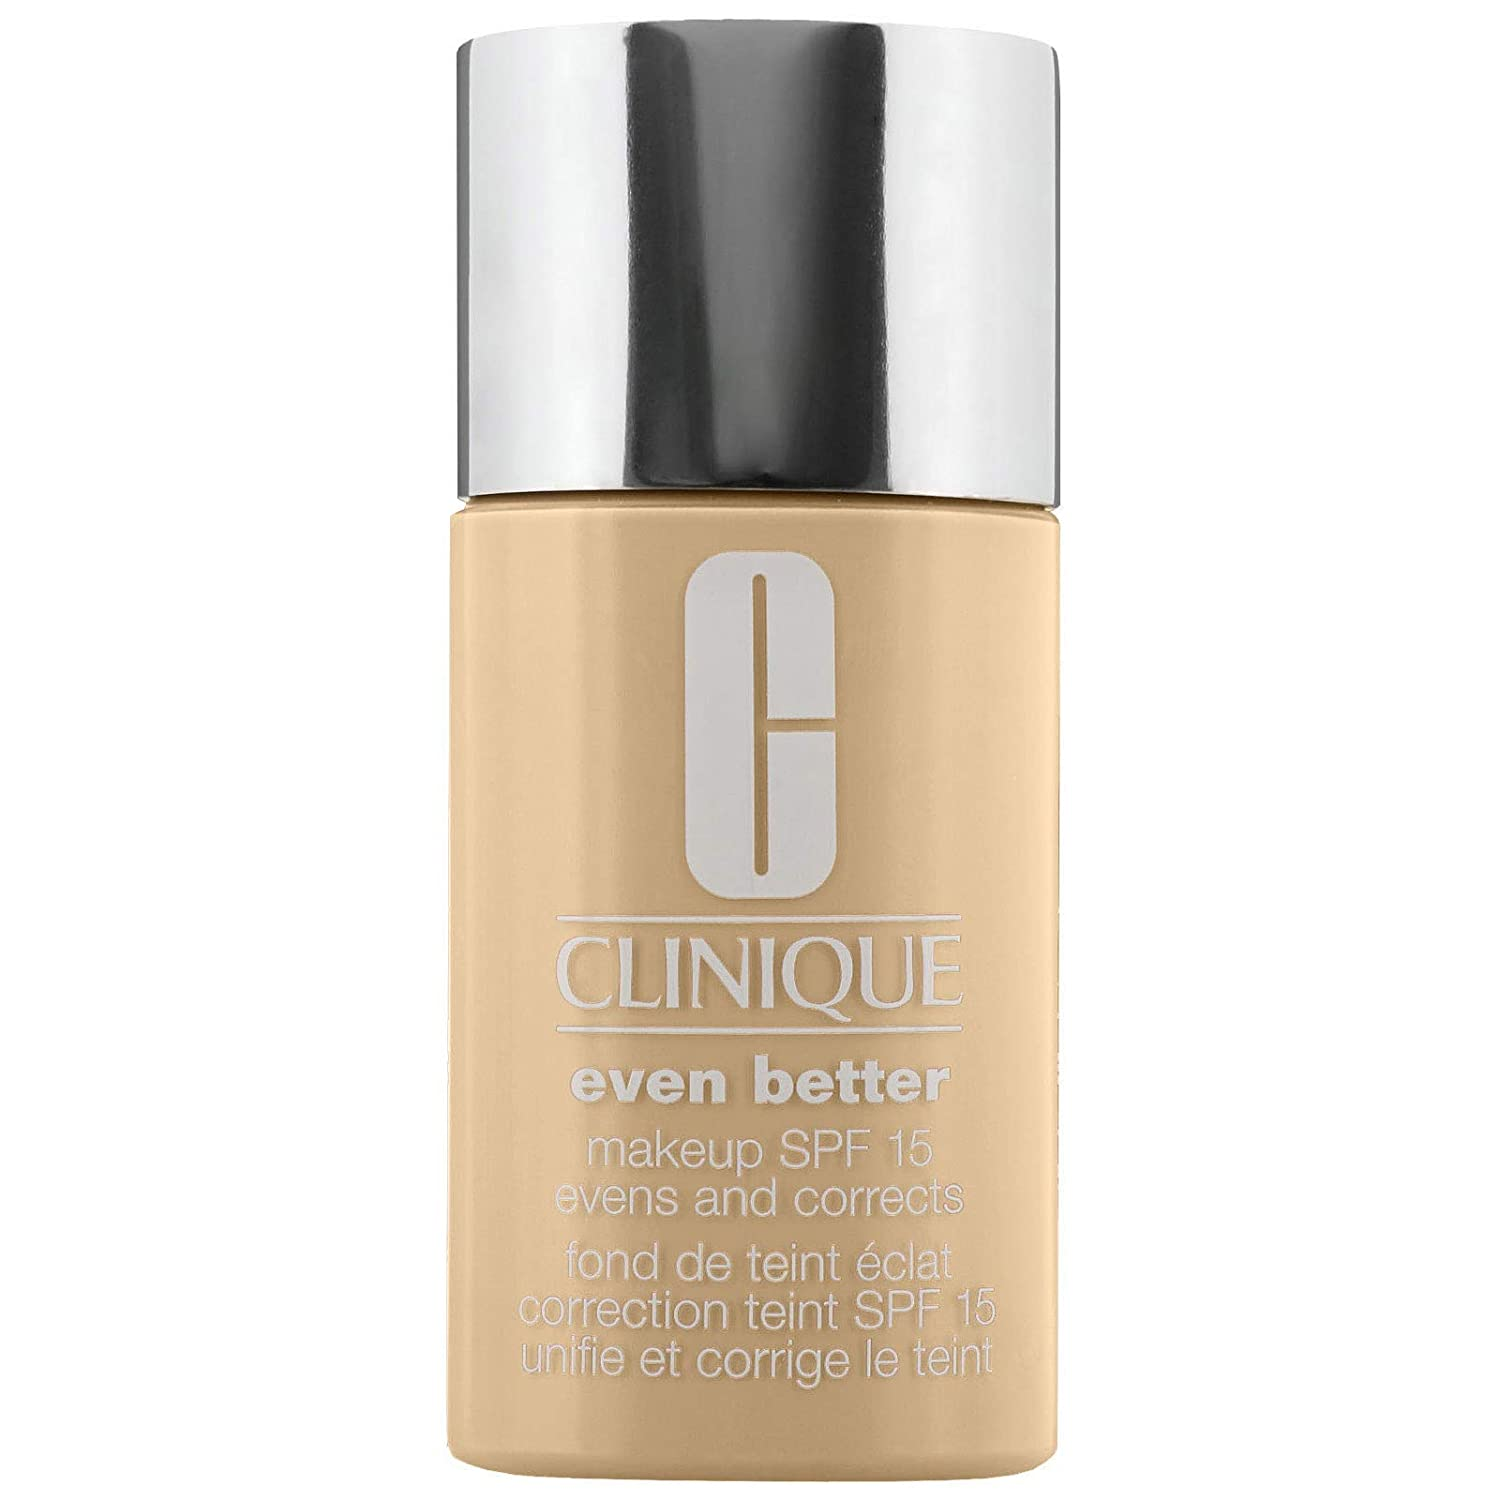 Clinique Even Better Makeup Spf 15 Dry to Combination Oily Skin, Neutral, 1 Ounce